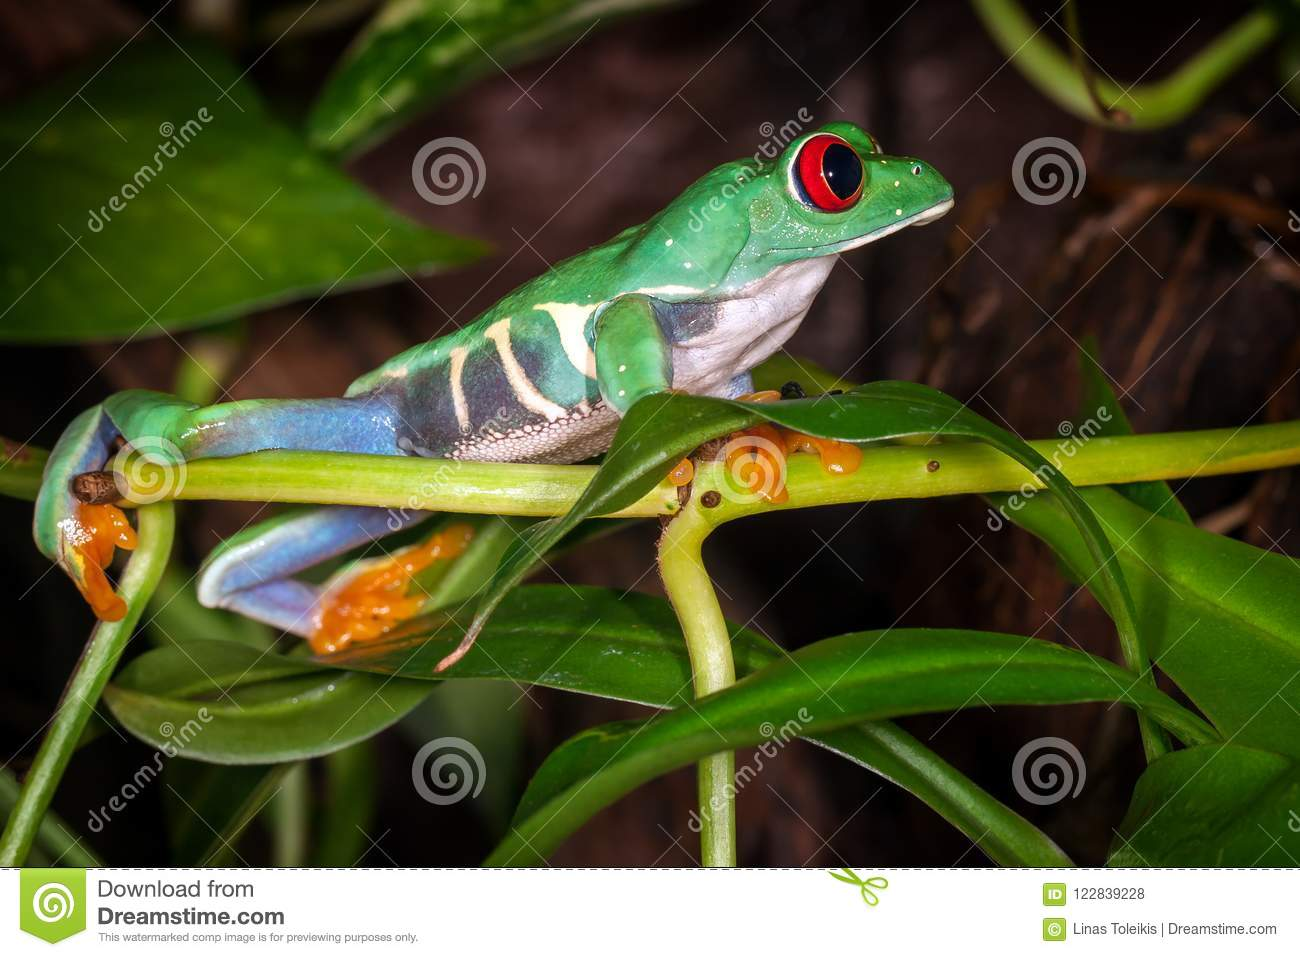 The red eyed tree frog looking